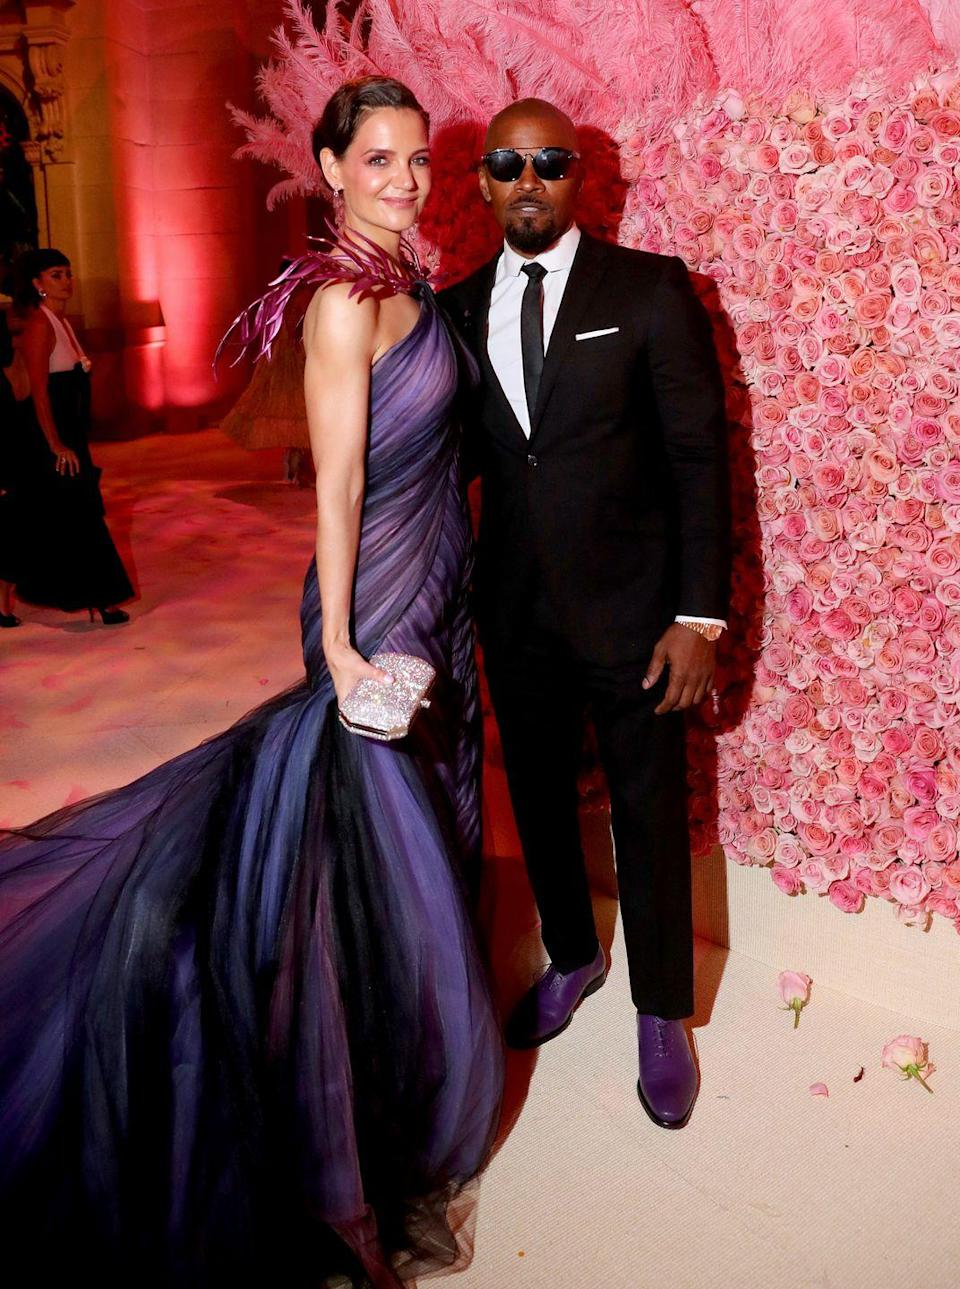 "<p>You won't get a peep out of Jamie Foxx when it comes to his relationship with Katie Holmes. The rumored couple were reportedly been an item since for six years—following her high-profile split with Tom Cruise. When an ESPN host questioned Foxx about Holmes during an NBA All-Star Weekend event in 2019, Foxx cut the <a href=""https://twitter.com/r0bato/status/964645295618494464"" rel=""nofollow noopener"" target=""_blank"" data-ylk=""slk:interview"" class=""link rapid-noclick-resp"">interview</a> short. While he couple made their red carpet debut at the <a href=""https://www.elle.com/culture/celebrities/a27390531/katie-holmes-jamie-foxx-met-gala-2019-pda-photos/"" rel=""nofollow noopener"" target=""_blank"" data-ylk=""slk:2019 Met Gala"" class=""link rapid-noclick-resp"">2019 Met Gala</a>, they <a href=""https://www.elle.com/culture/celebrities/a28751635/katie-holmes-jamie-foxx-breakup/"" rel=""nofollow noopener"" target=""_blank"" data-ylk=""slk:reportedly split"" class=""link rapid-noclick-resp"">reportedly split</a> shortly after. Sources gave conflicting accounts of <a href=""https://www.elle.com/culture/celebrities/a28770733/katie-holmes-jamie-foxx-breakup-reason/"" rel=""nofollow noopener"" target=""_blank"" data-ylk=""slk:the reason for their breakup"" class=""link rapid-noclick-resp"">the reason for their breakup</a>.</p>"